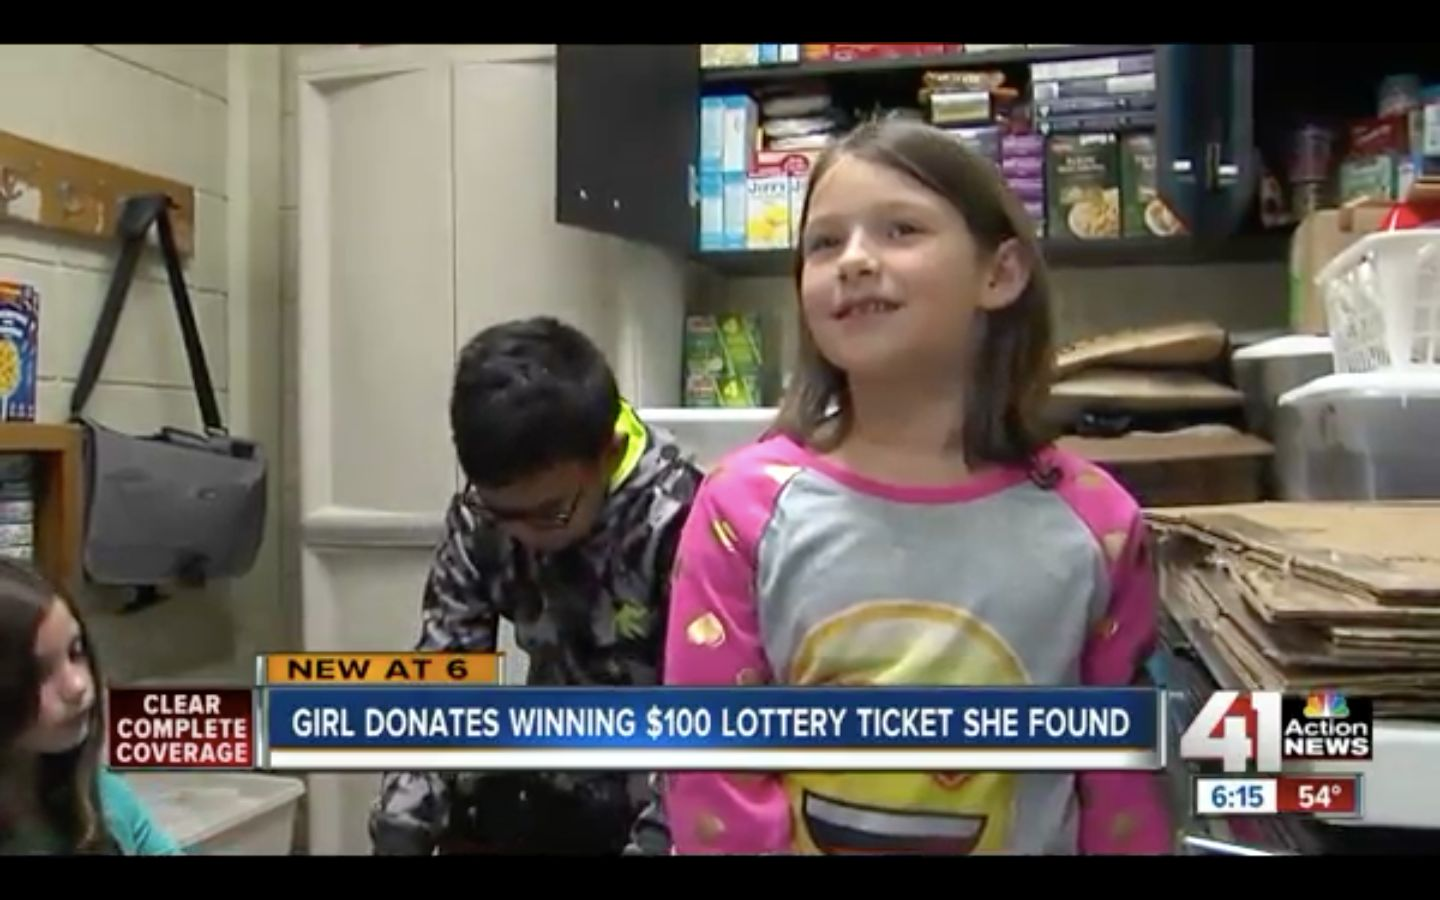 Phoebe Brown, 7, donated $100 worth of food to her school's food drive after finding a winning scratch-off ticket on the grou